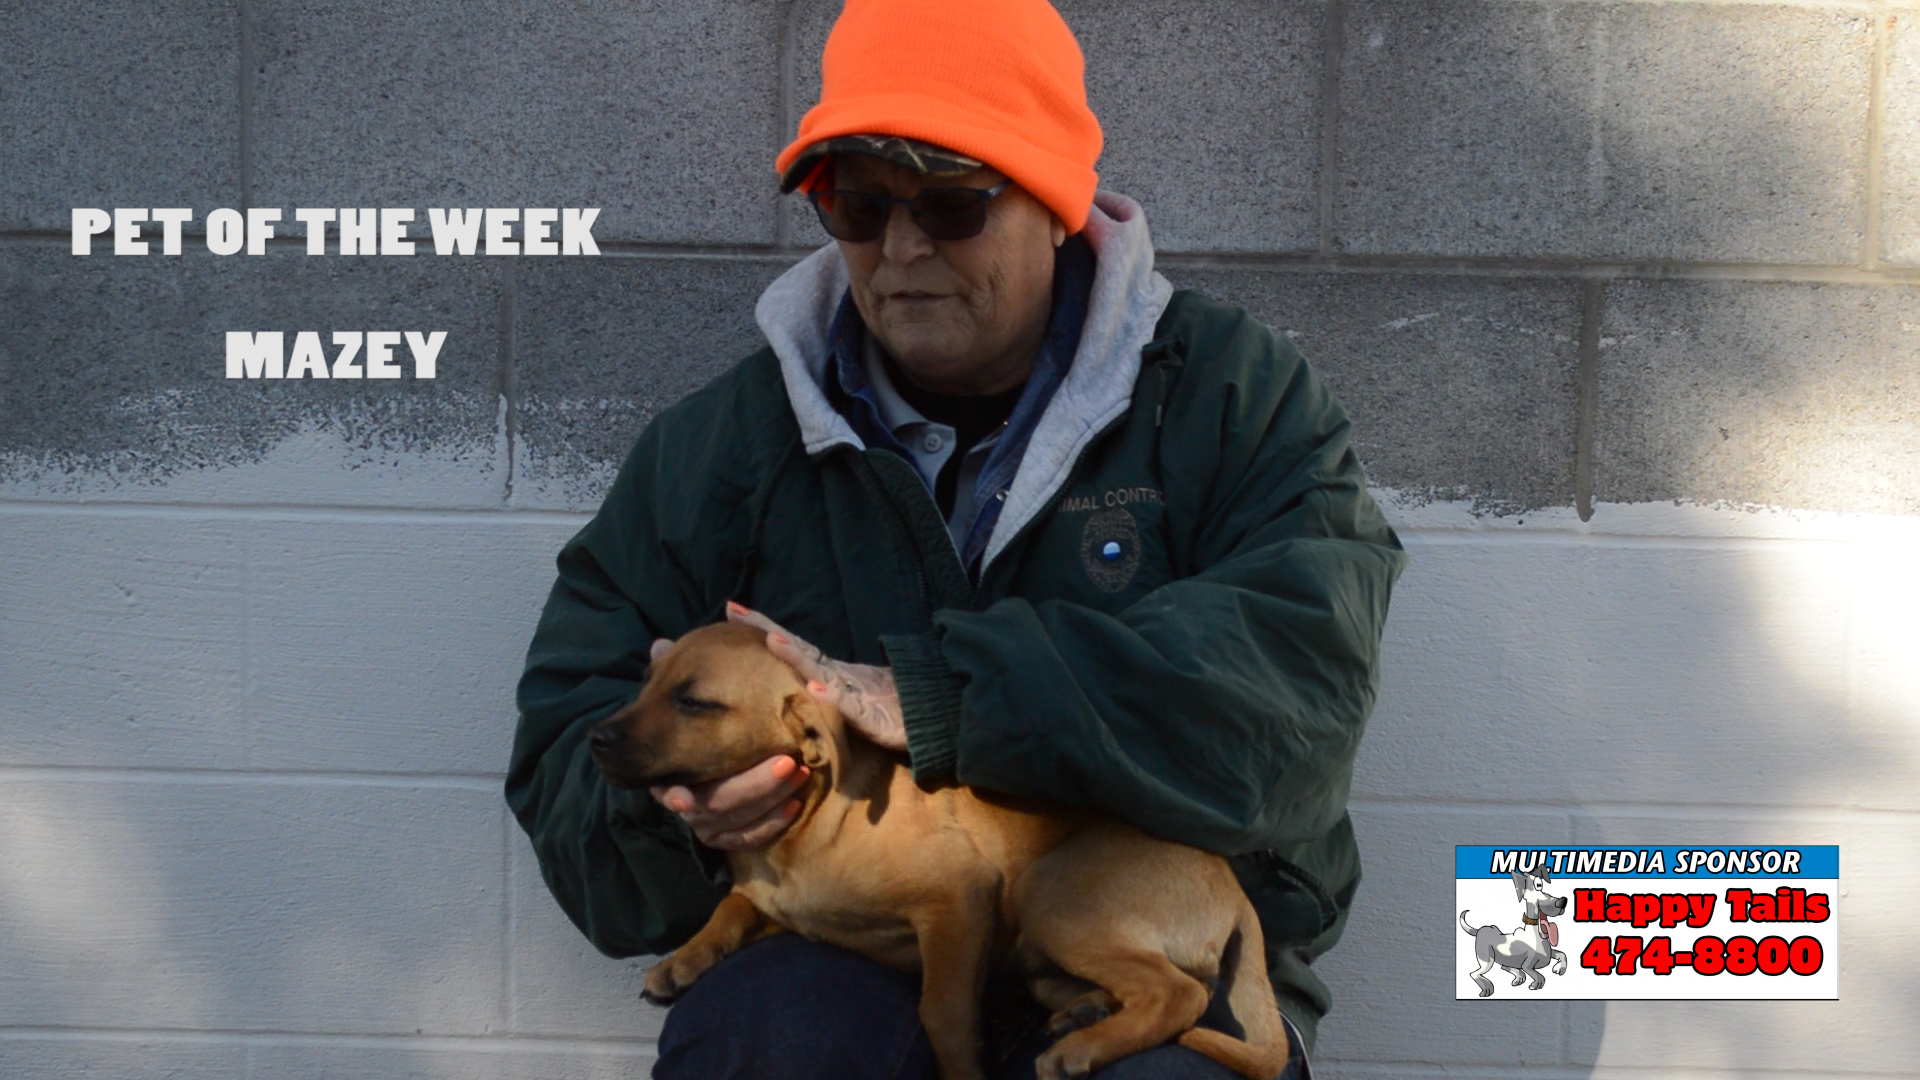 VIDEO: Pet of the Week - Mazey